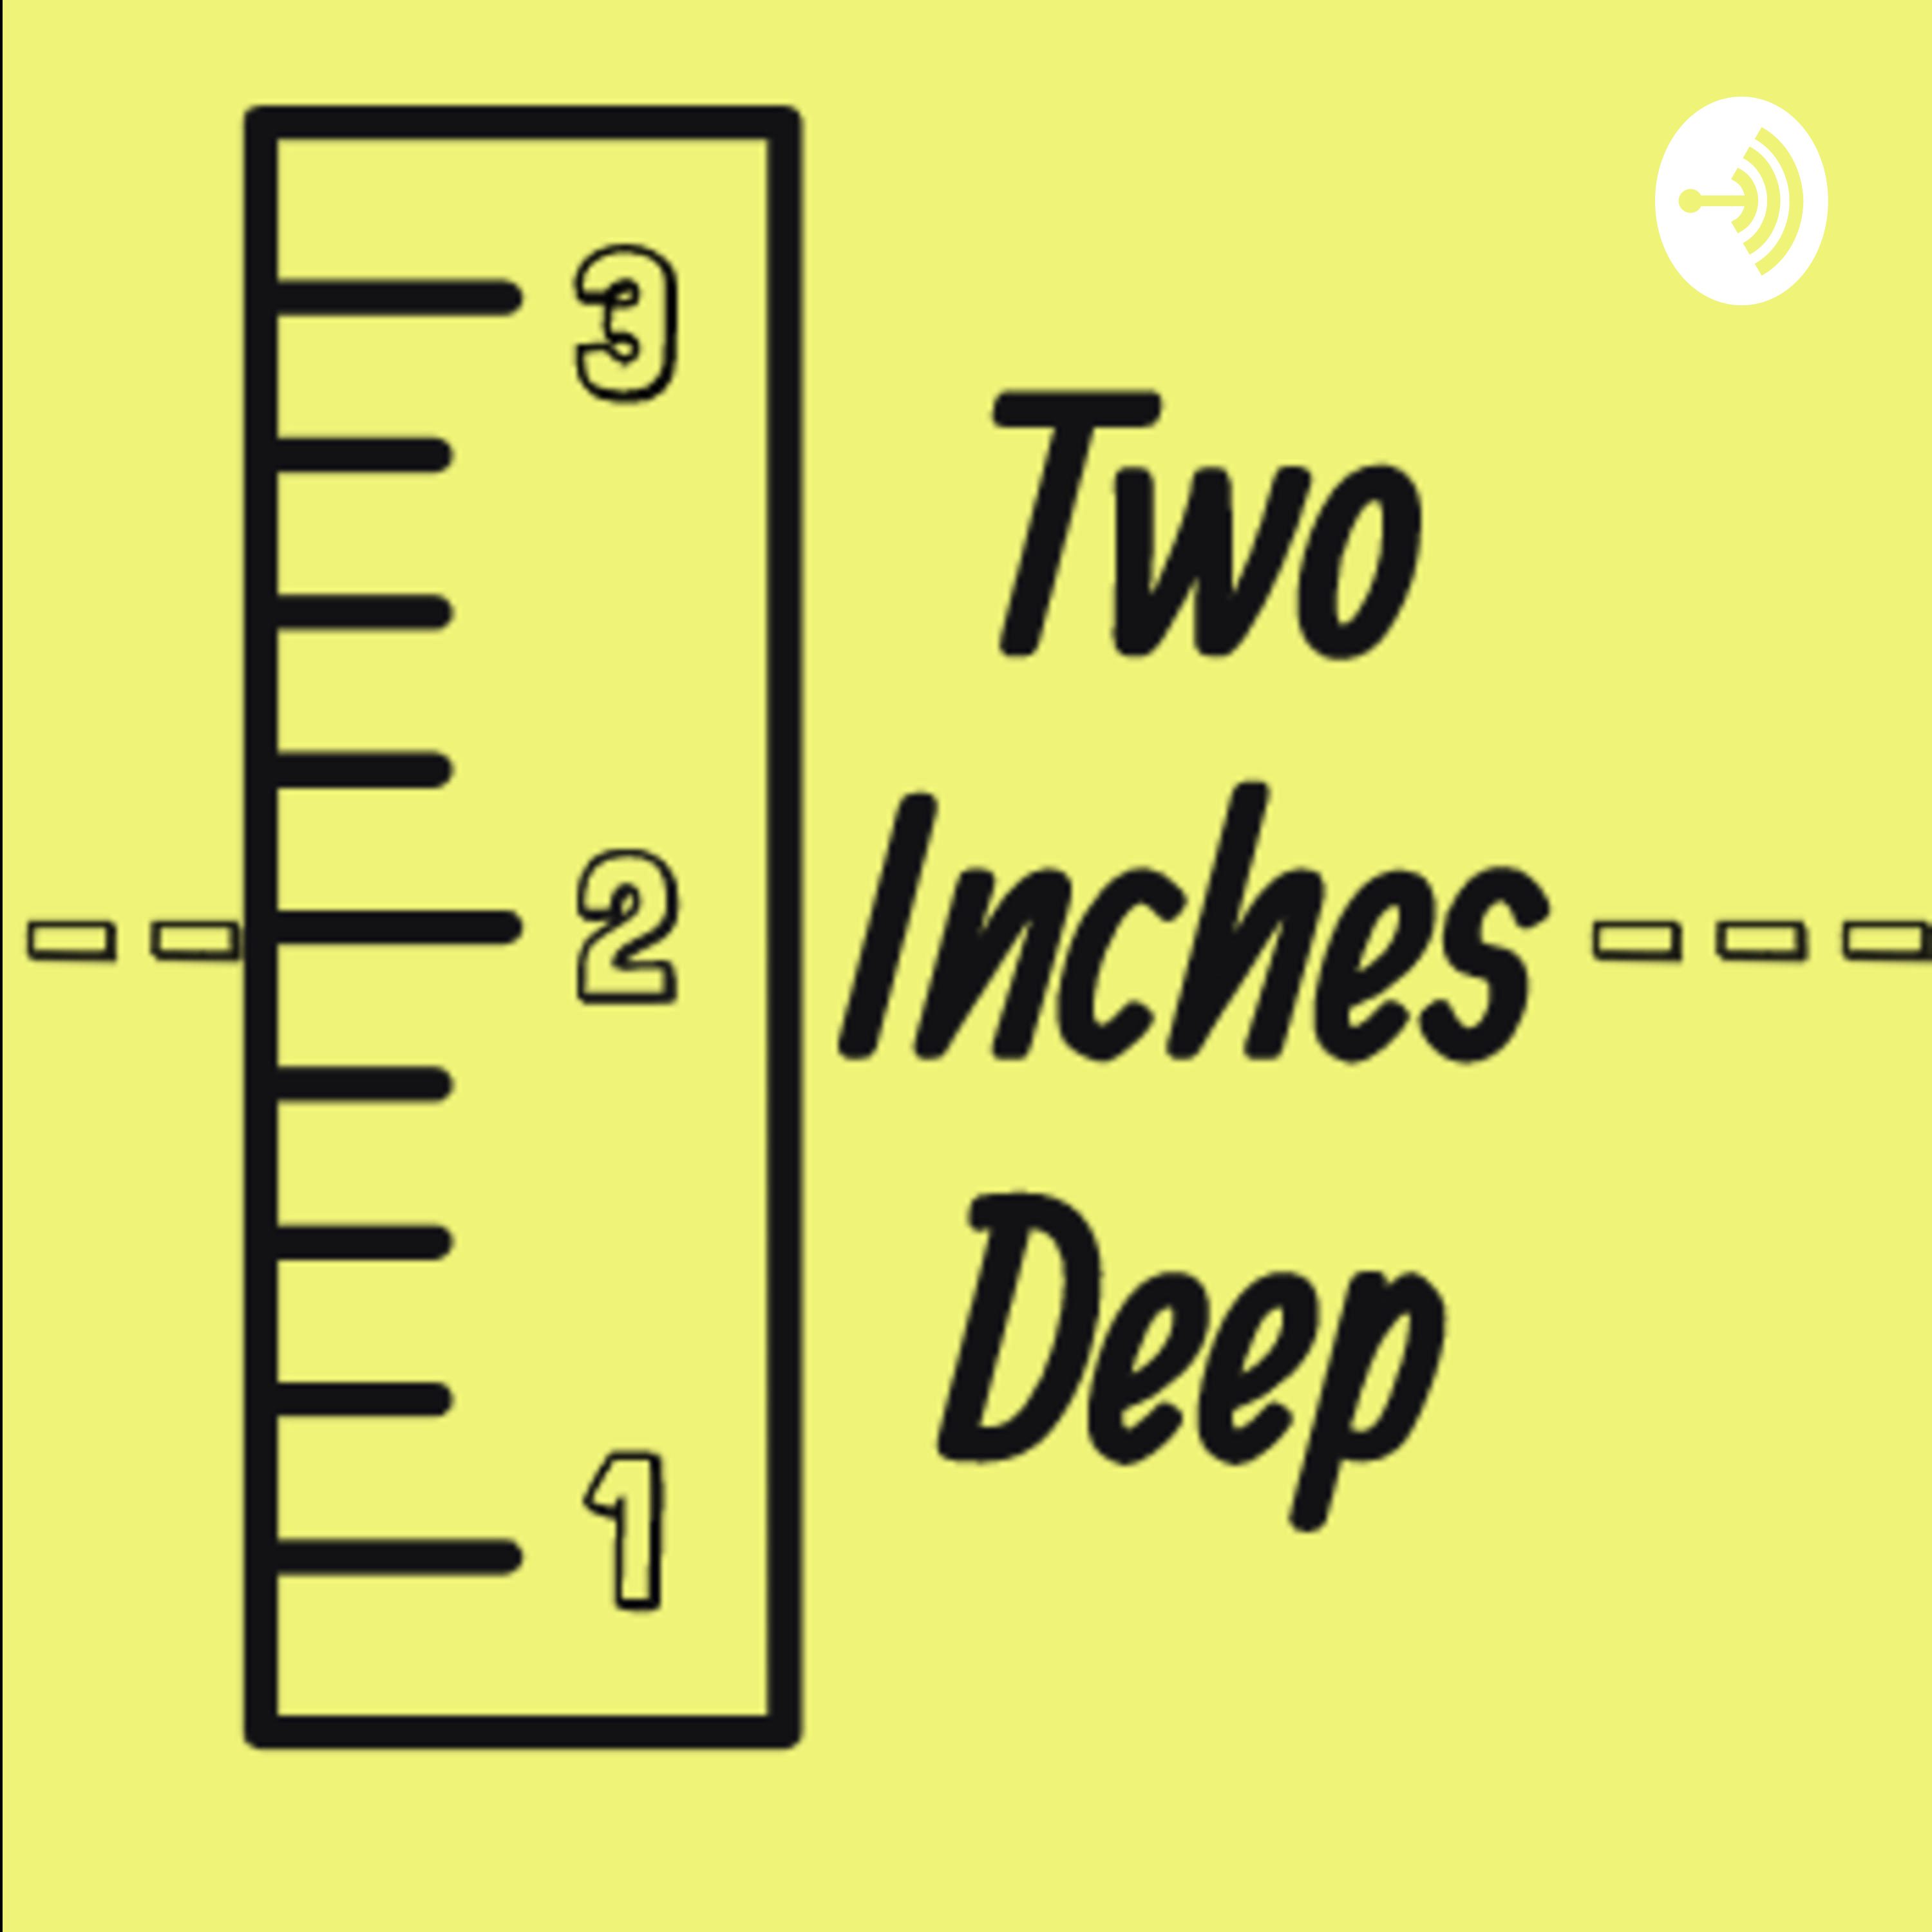 Two Inches Deep